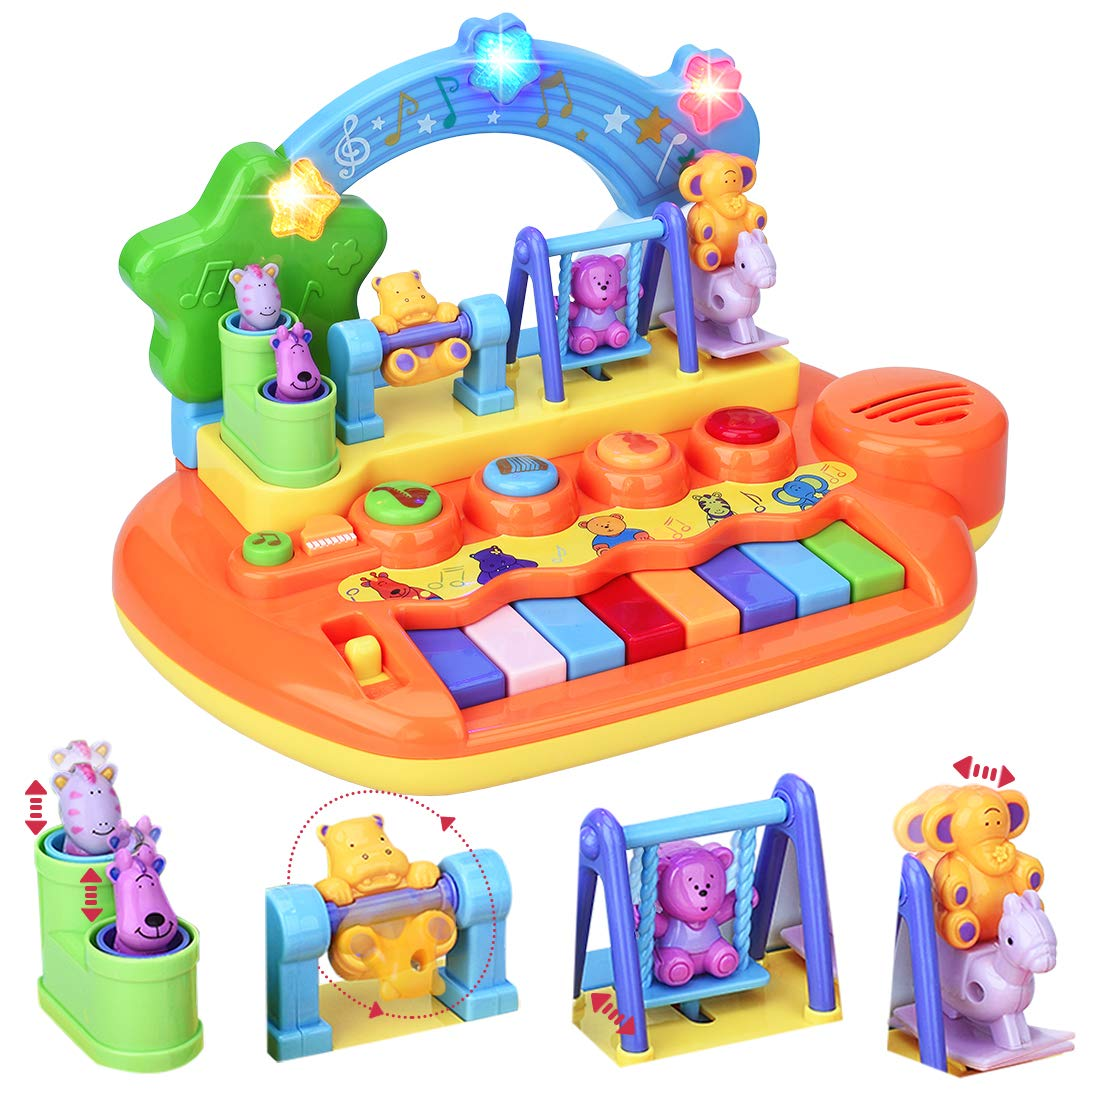 Forstart Learn-to-Play Musical Toy Piano with 8 Keys Keyboard Animal Playground LED Light Early Education Instrument Favorites Busy Babies Toddlers Preschoolers Learning